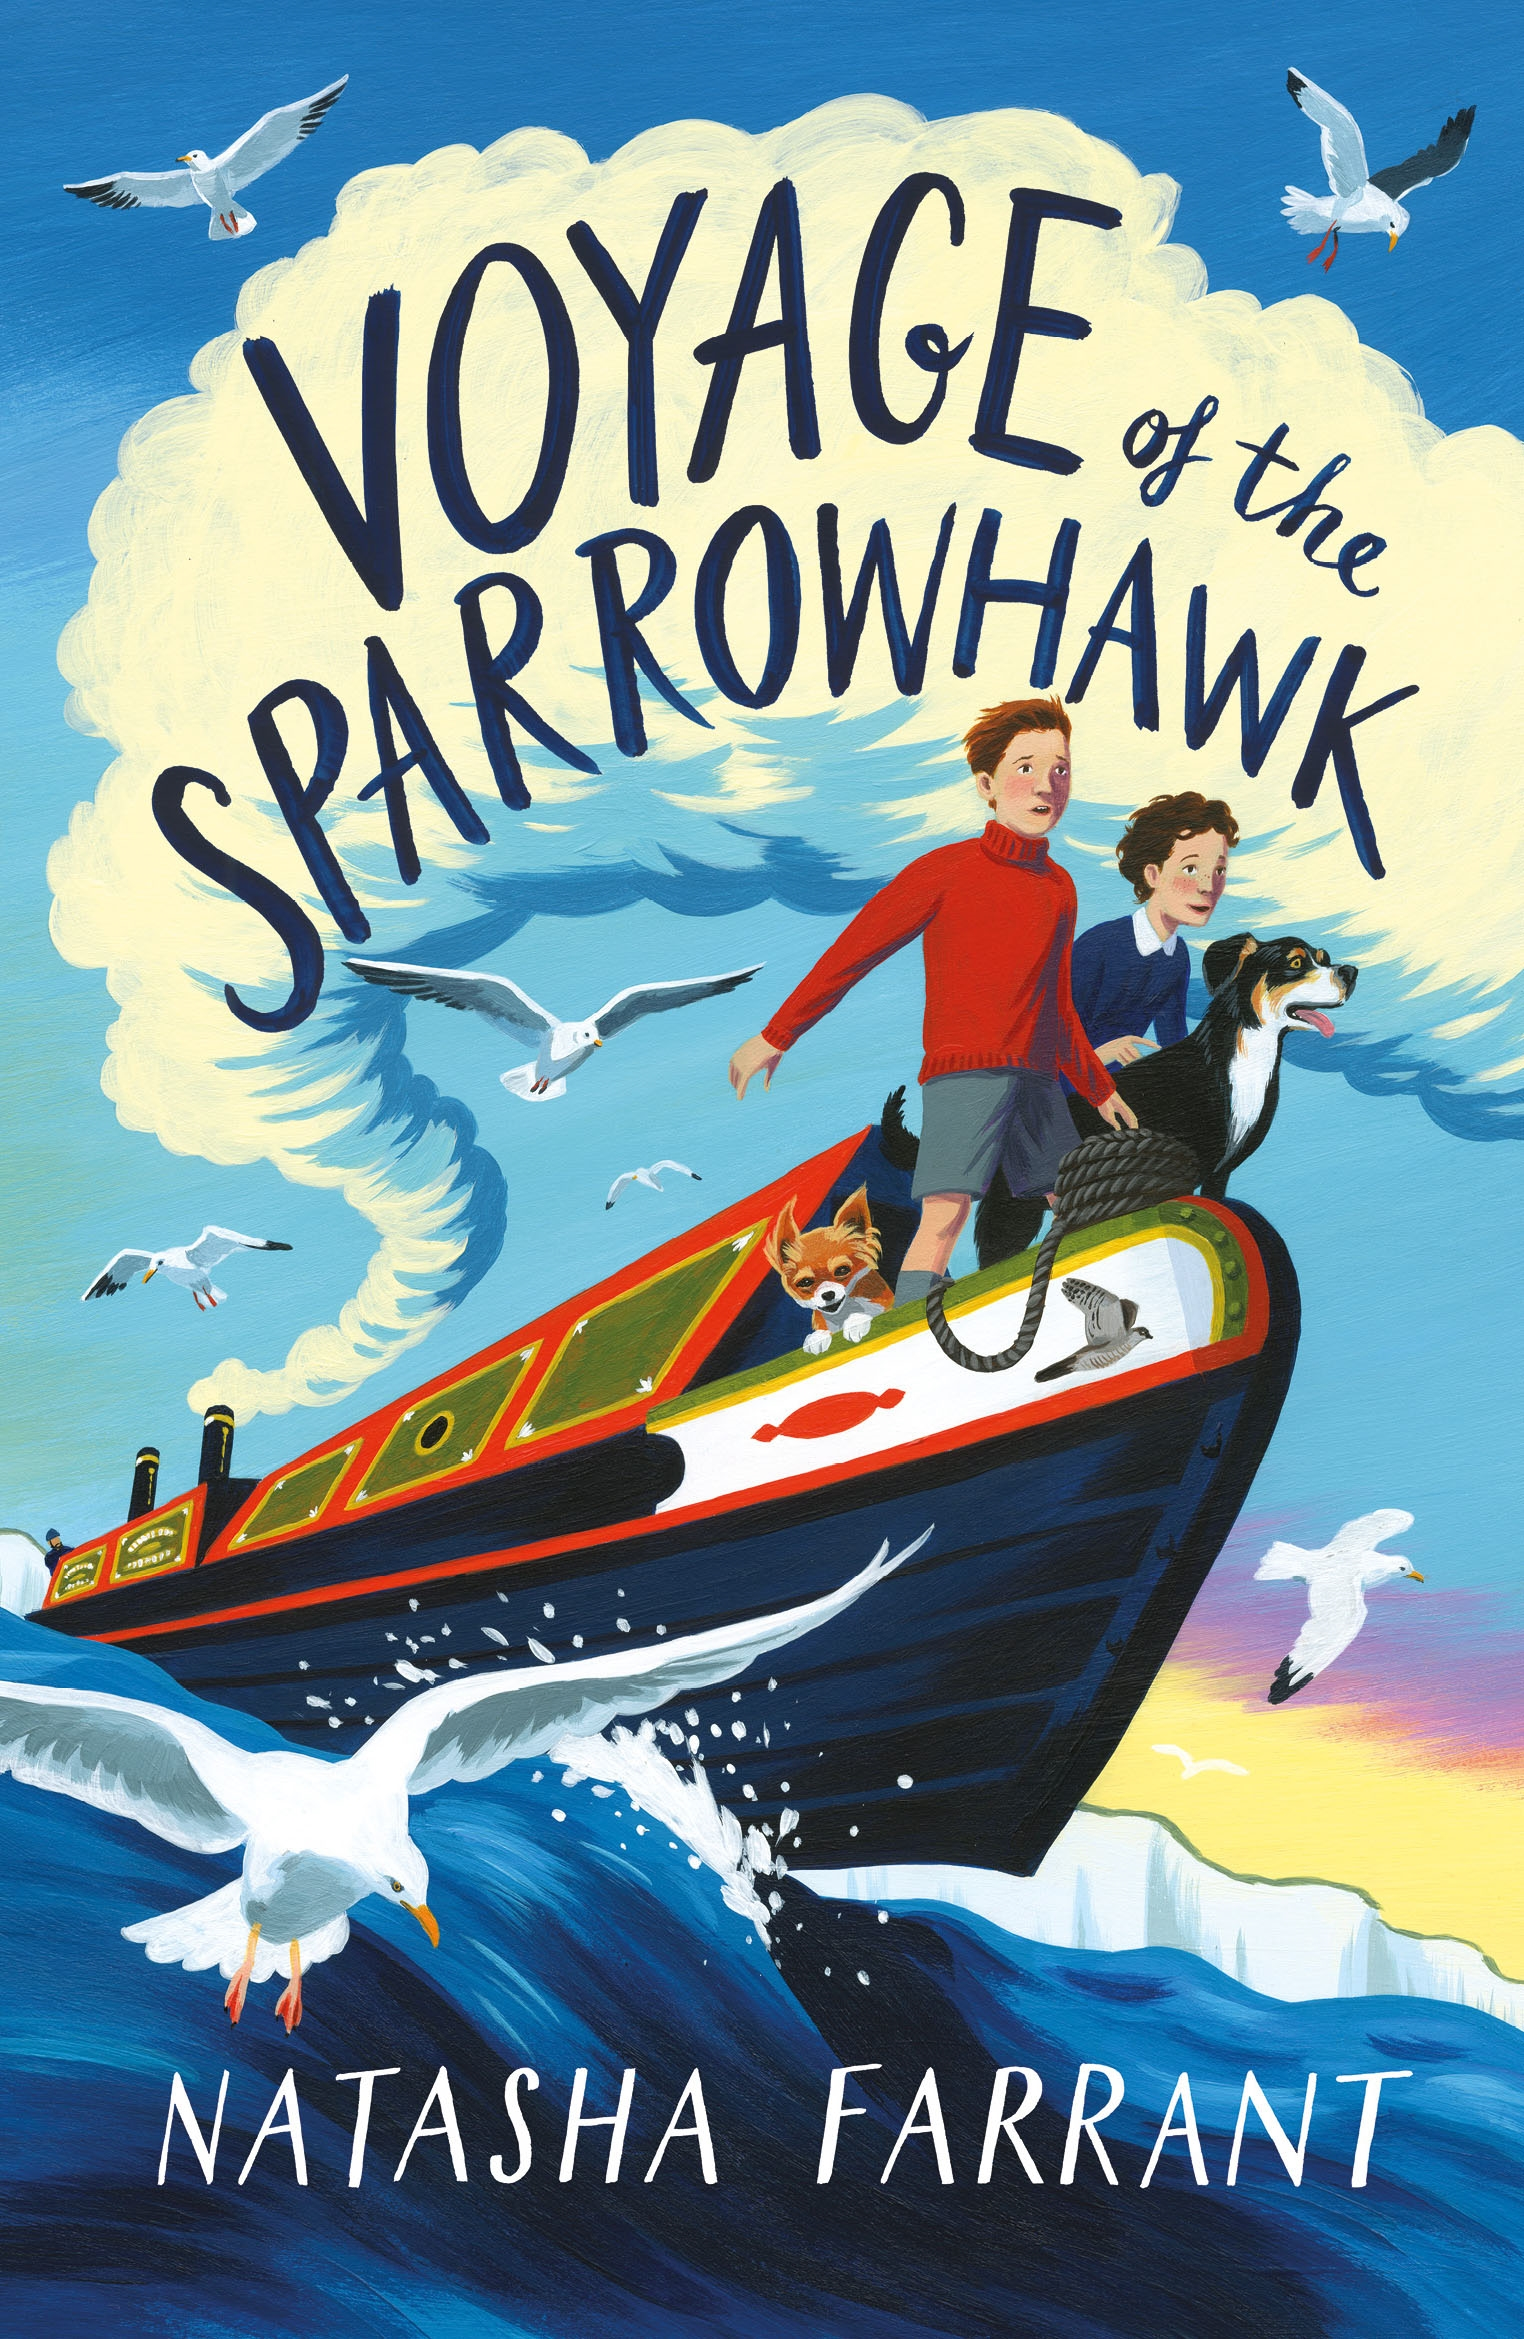 The Voyage of the Sparrowhawk by Natasha Farrant